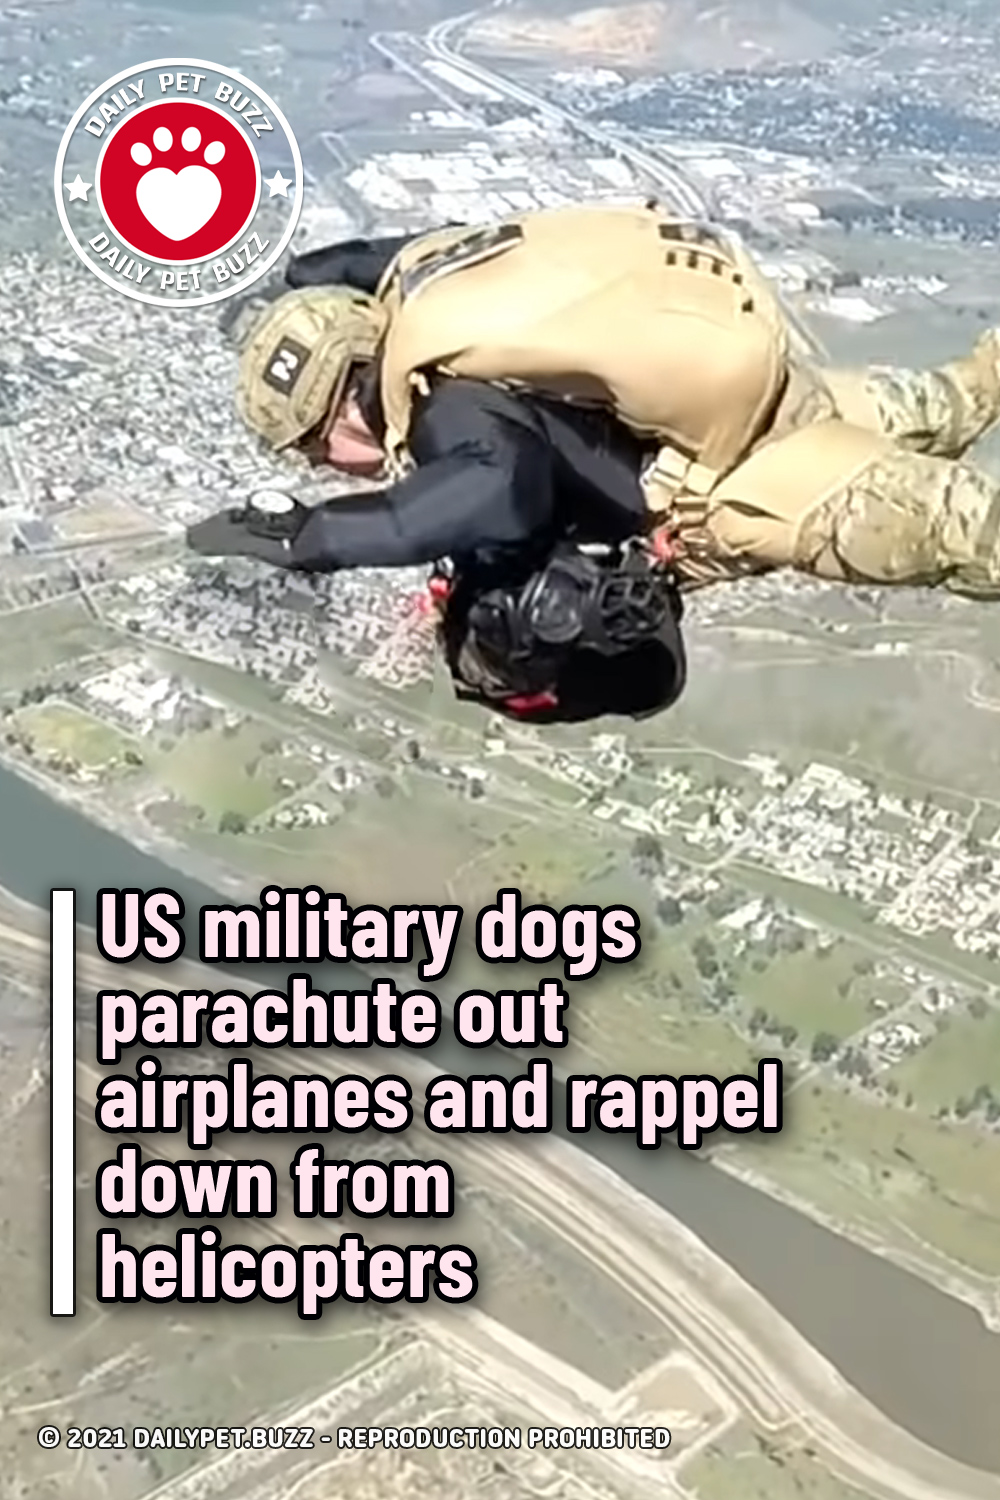 US military dogs parachute out airplanes and rappel down from helicopters